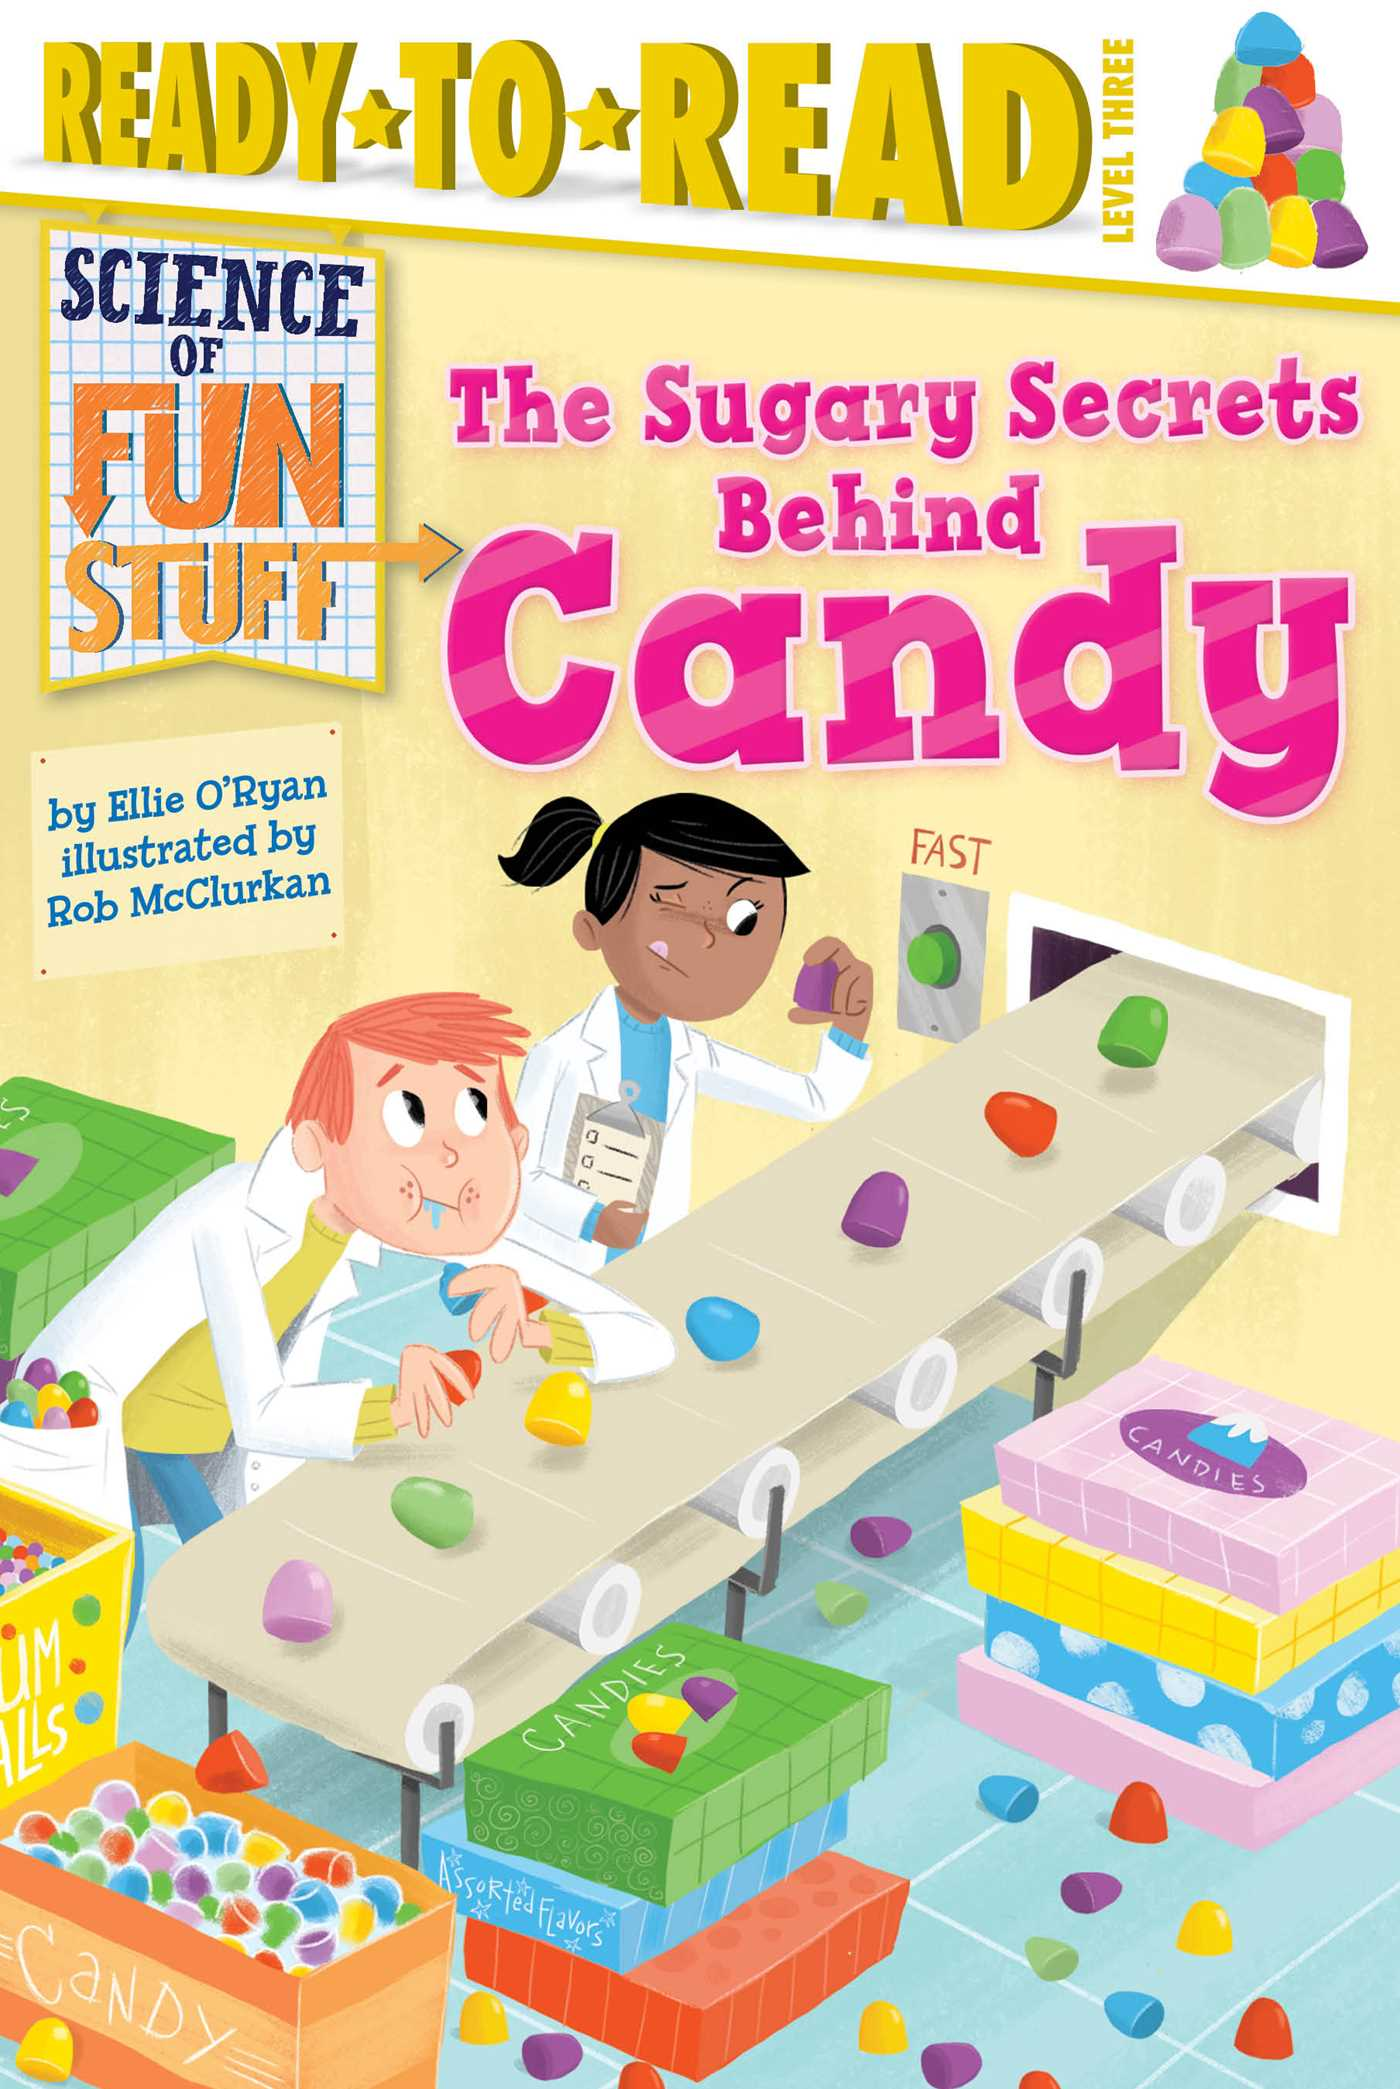 The sugary secrets behind candy 9781481456265 hr